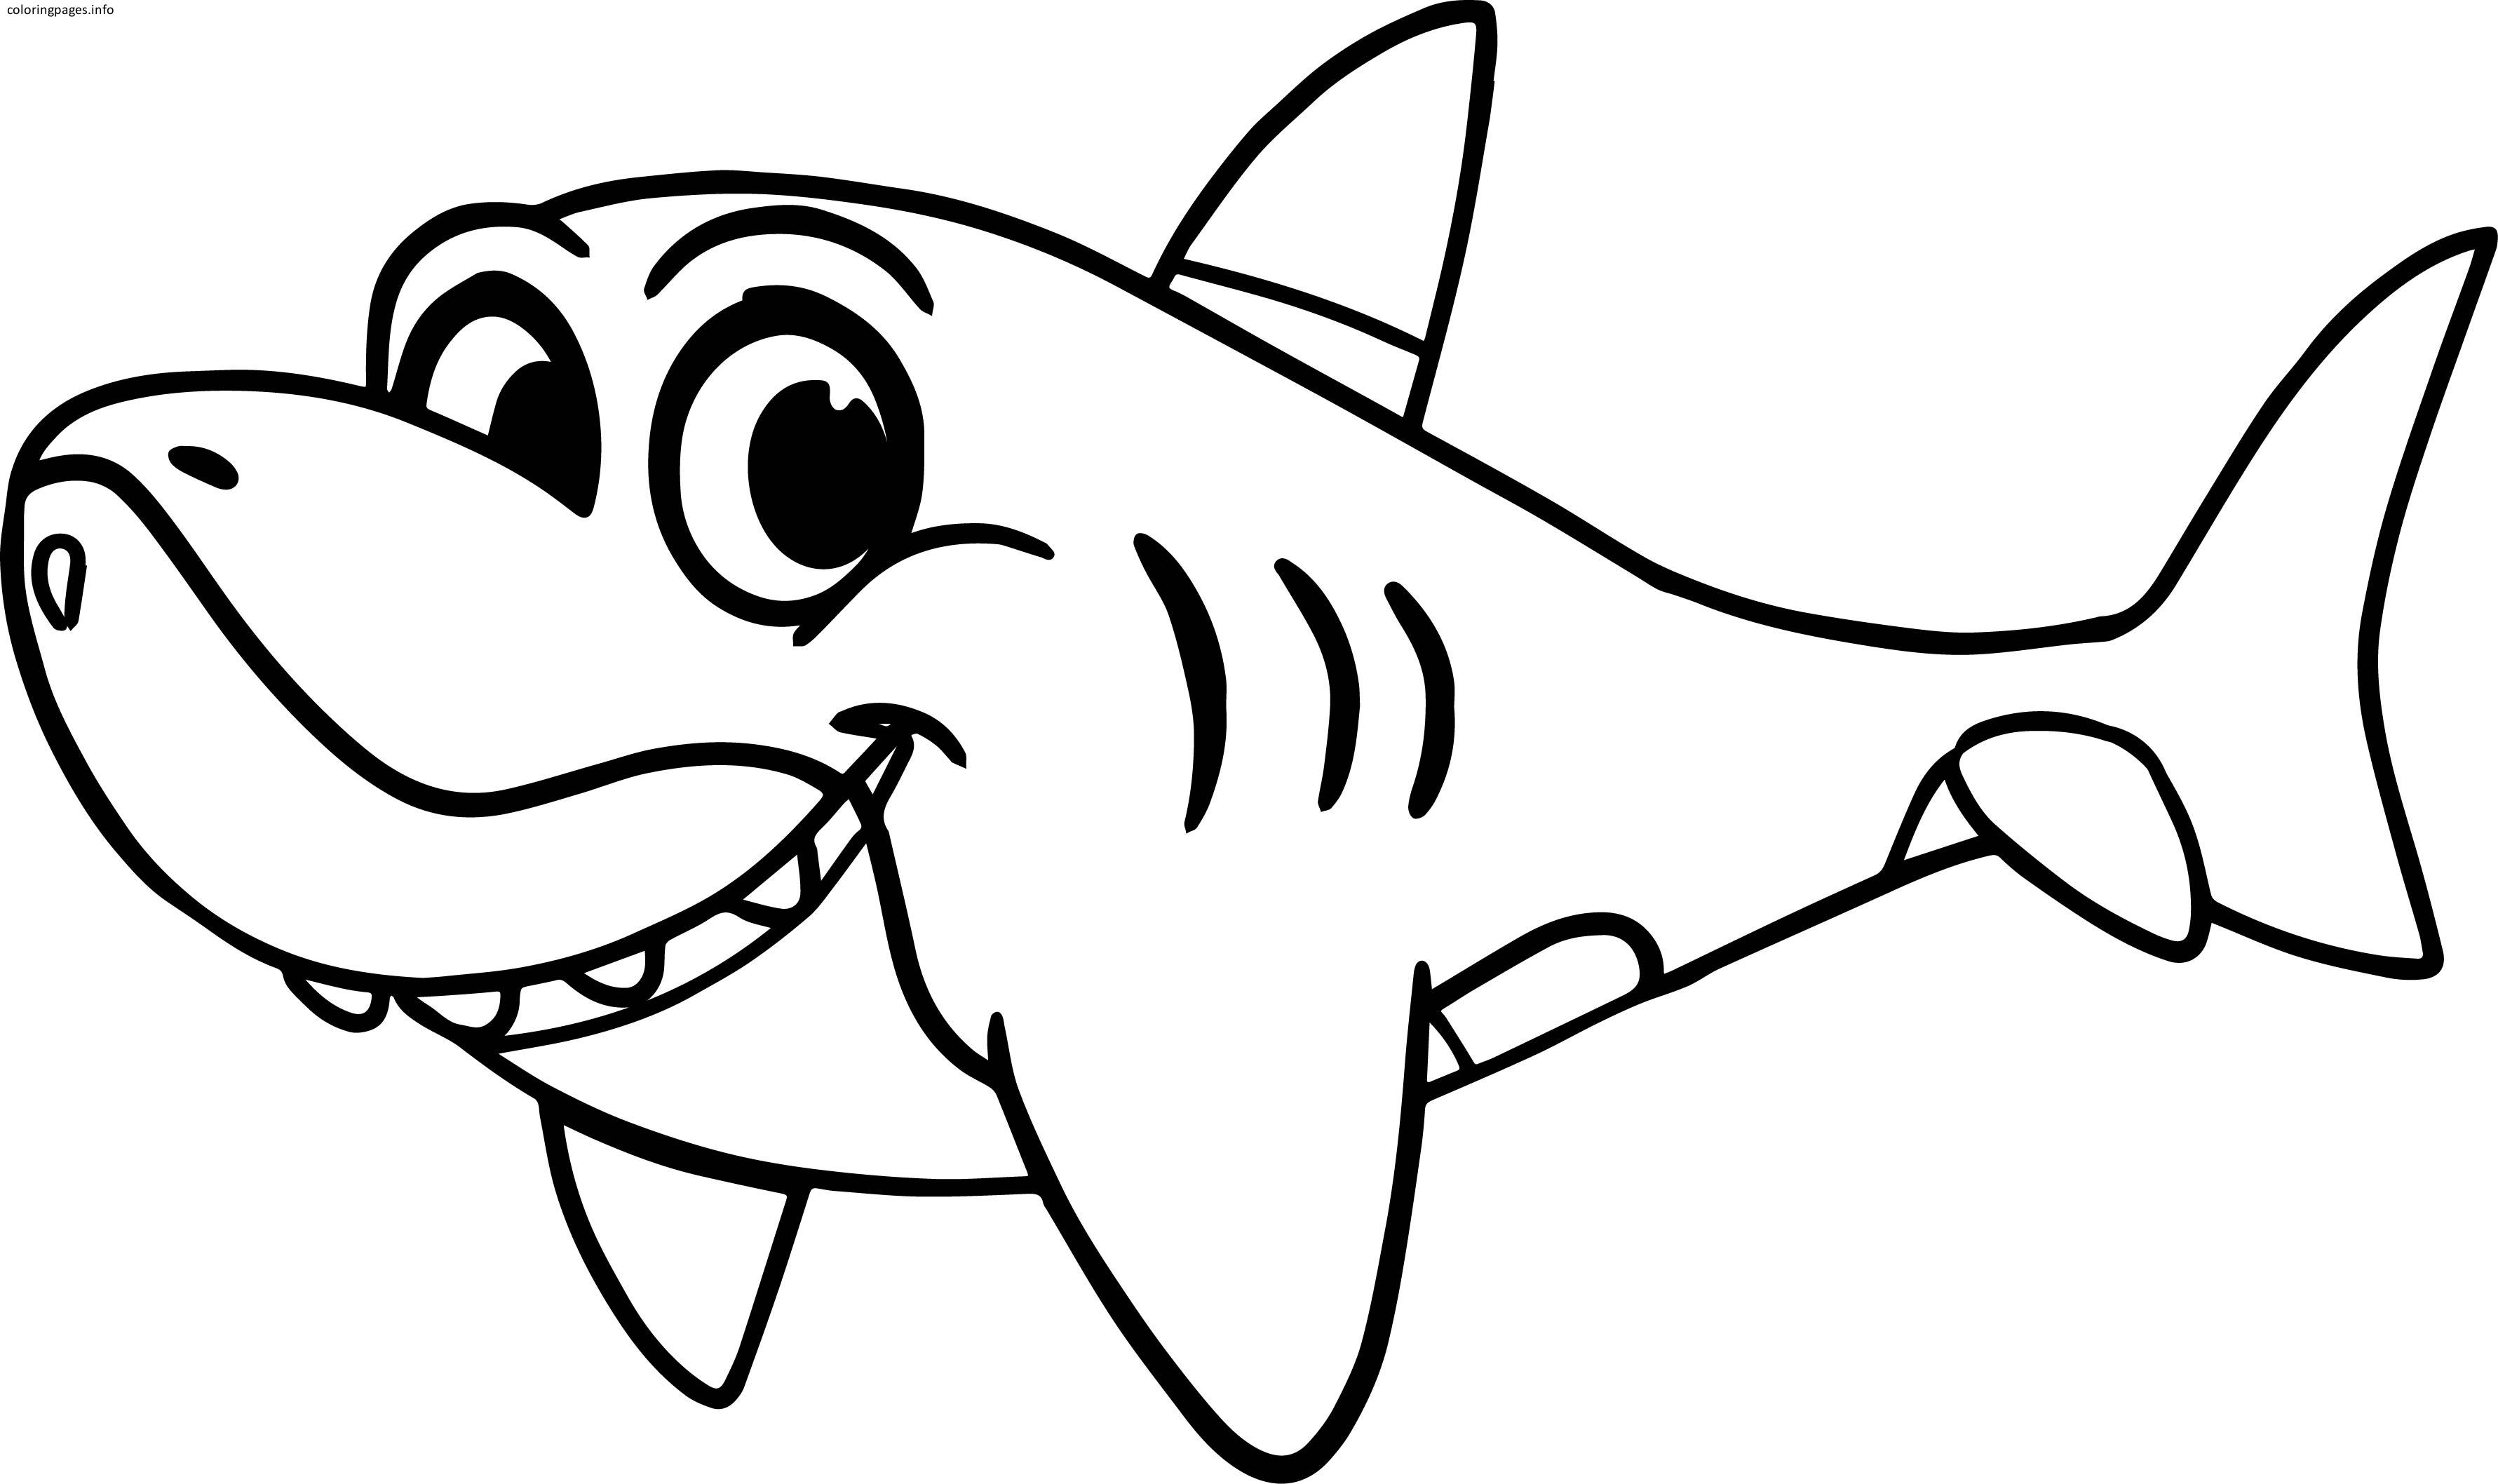 sharks to color free printable shark coloring pages for kids animal place color sharks to